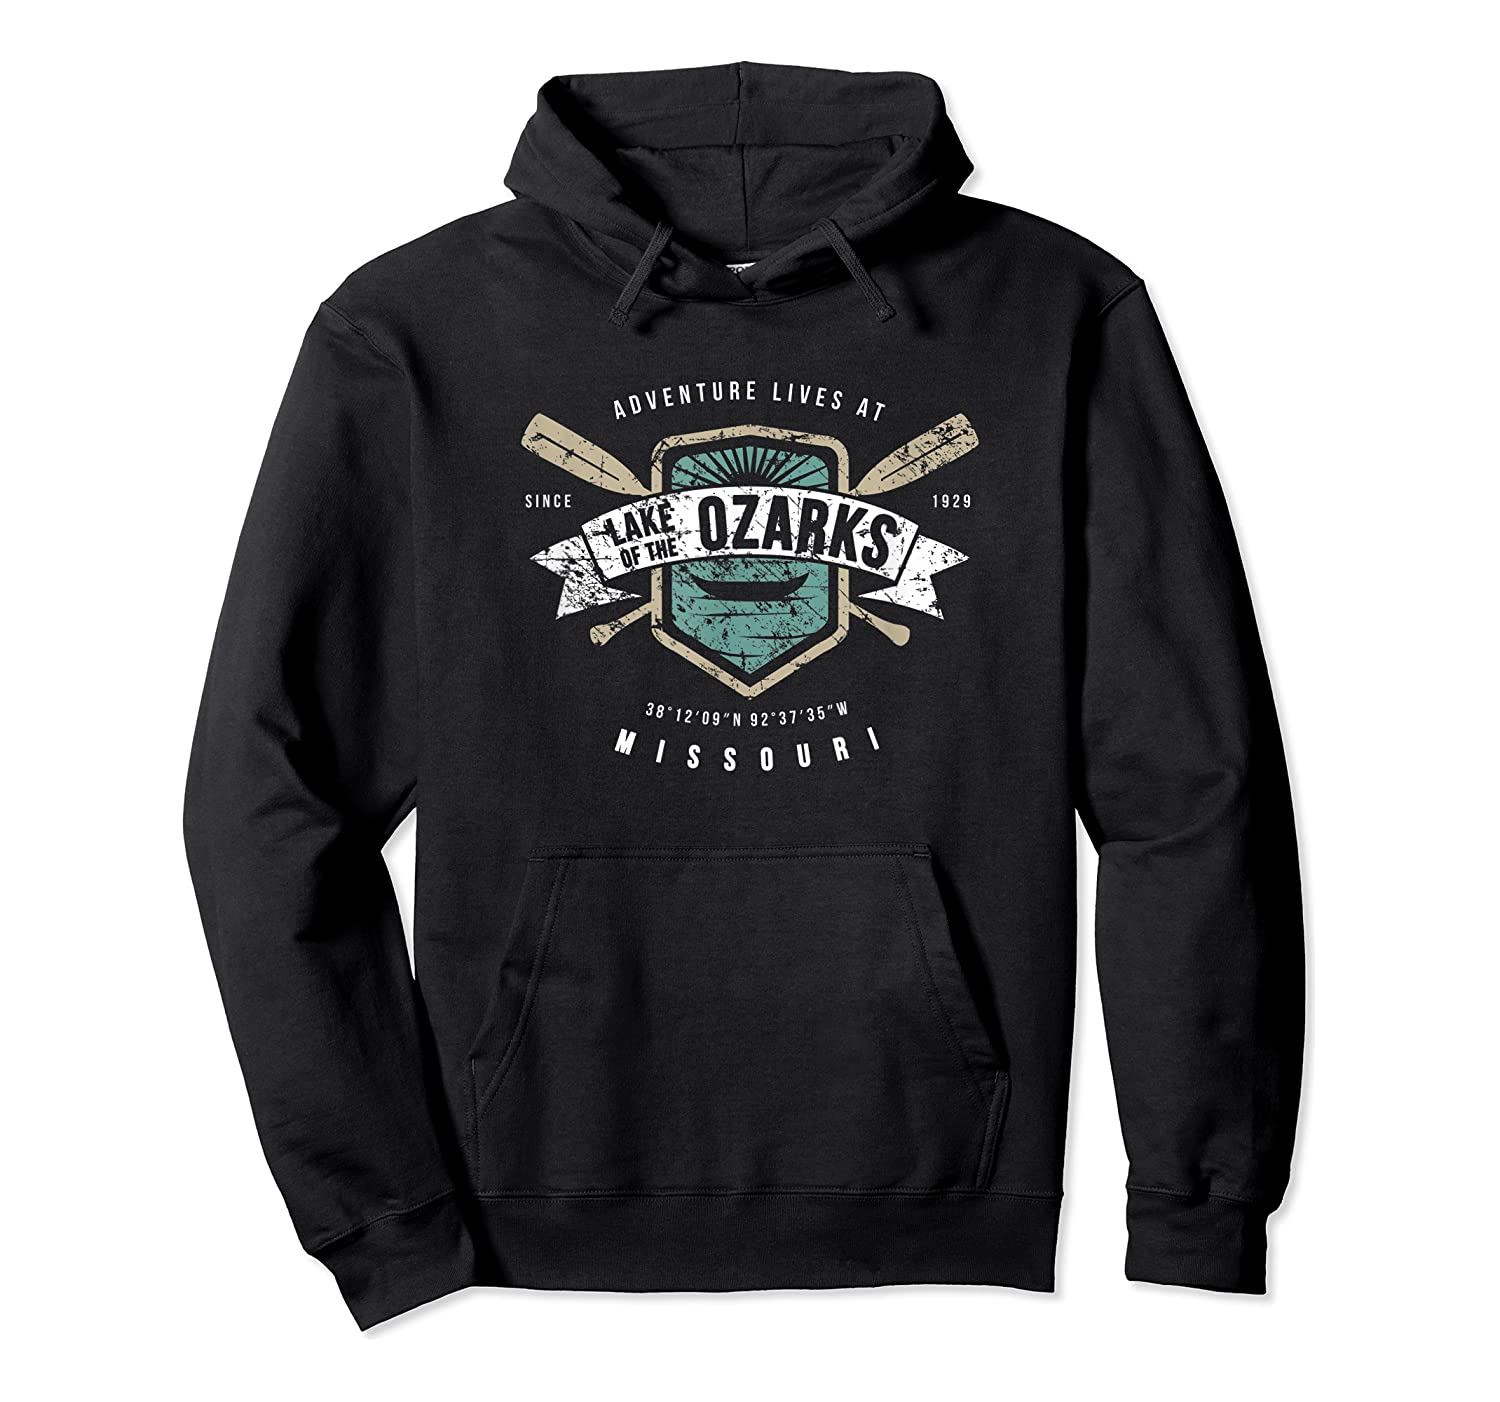 Lake Of The Ozarks Missouri Shirt, Fishing Boat Camping Gift Unisex Pullover Hoodie